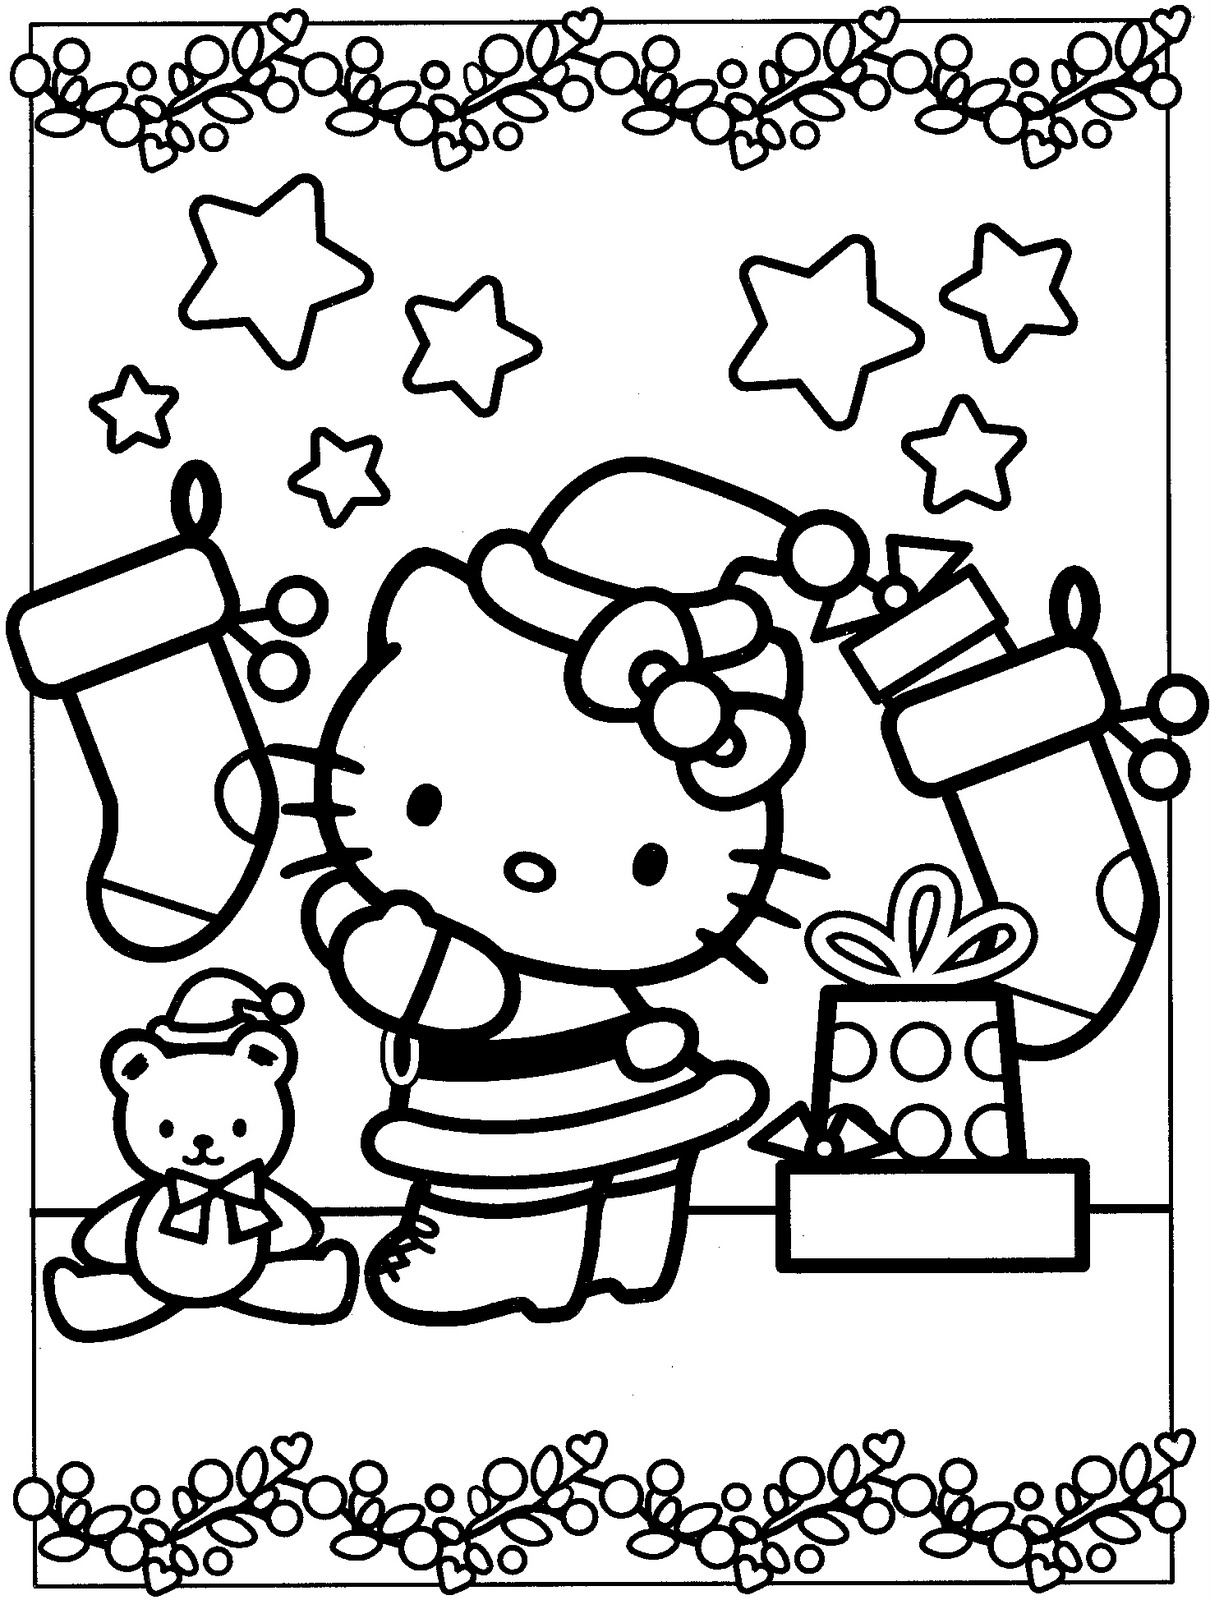 Free Printable Hello Kitty Coloring Pages 2577 with Capricus Collection Of Proven Coloring Pages to Print Hello Kitty 2895 Unknown Printable